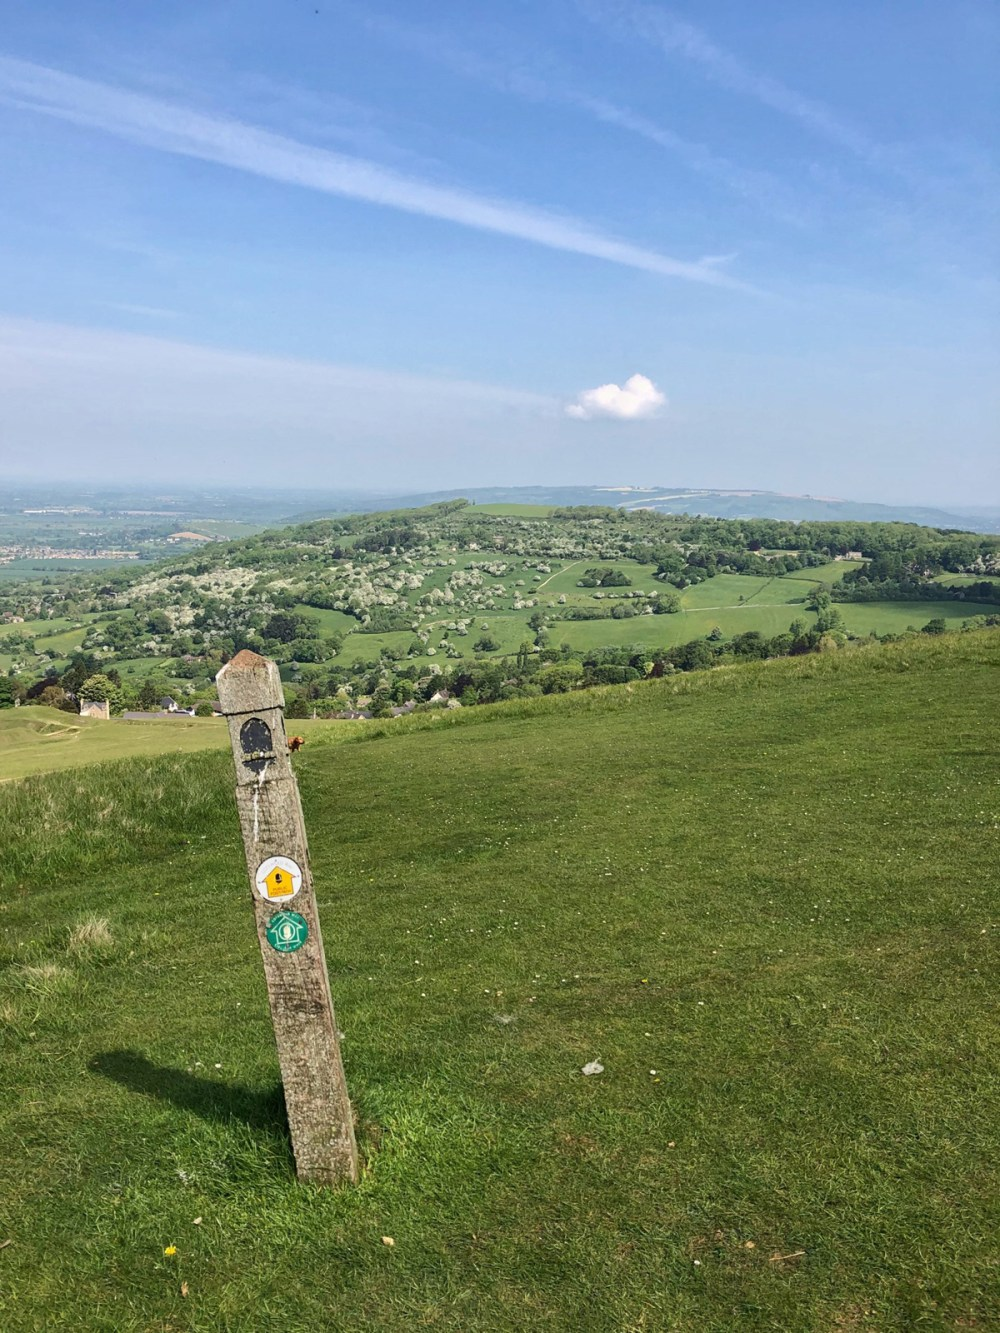 Splodz Blogz | Year in Photos - Cleeve Hill